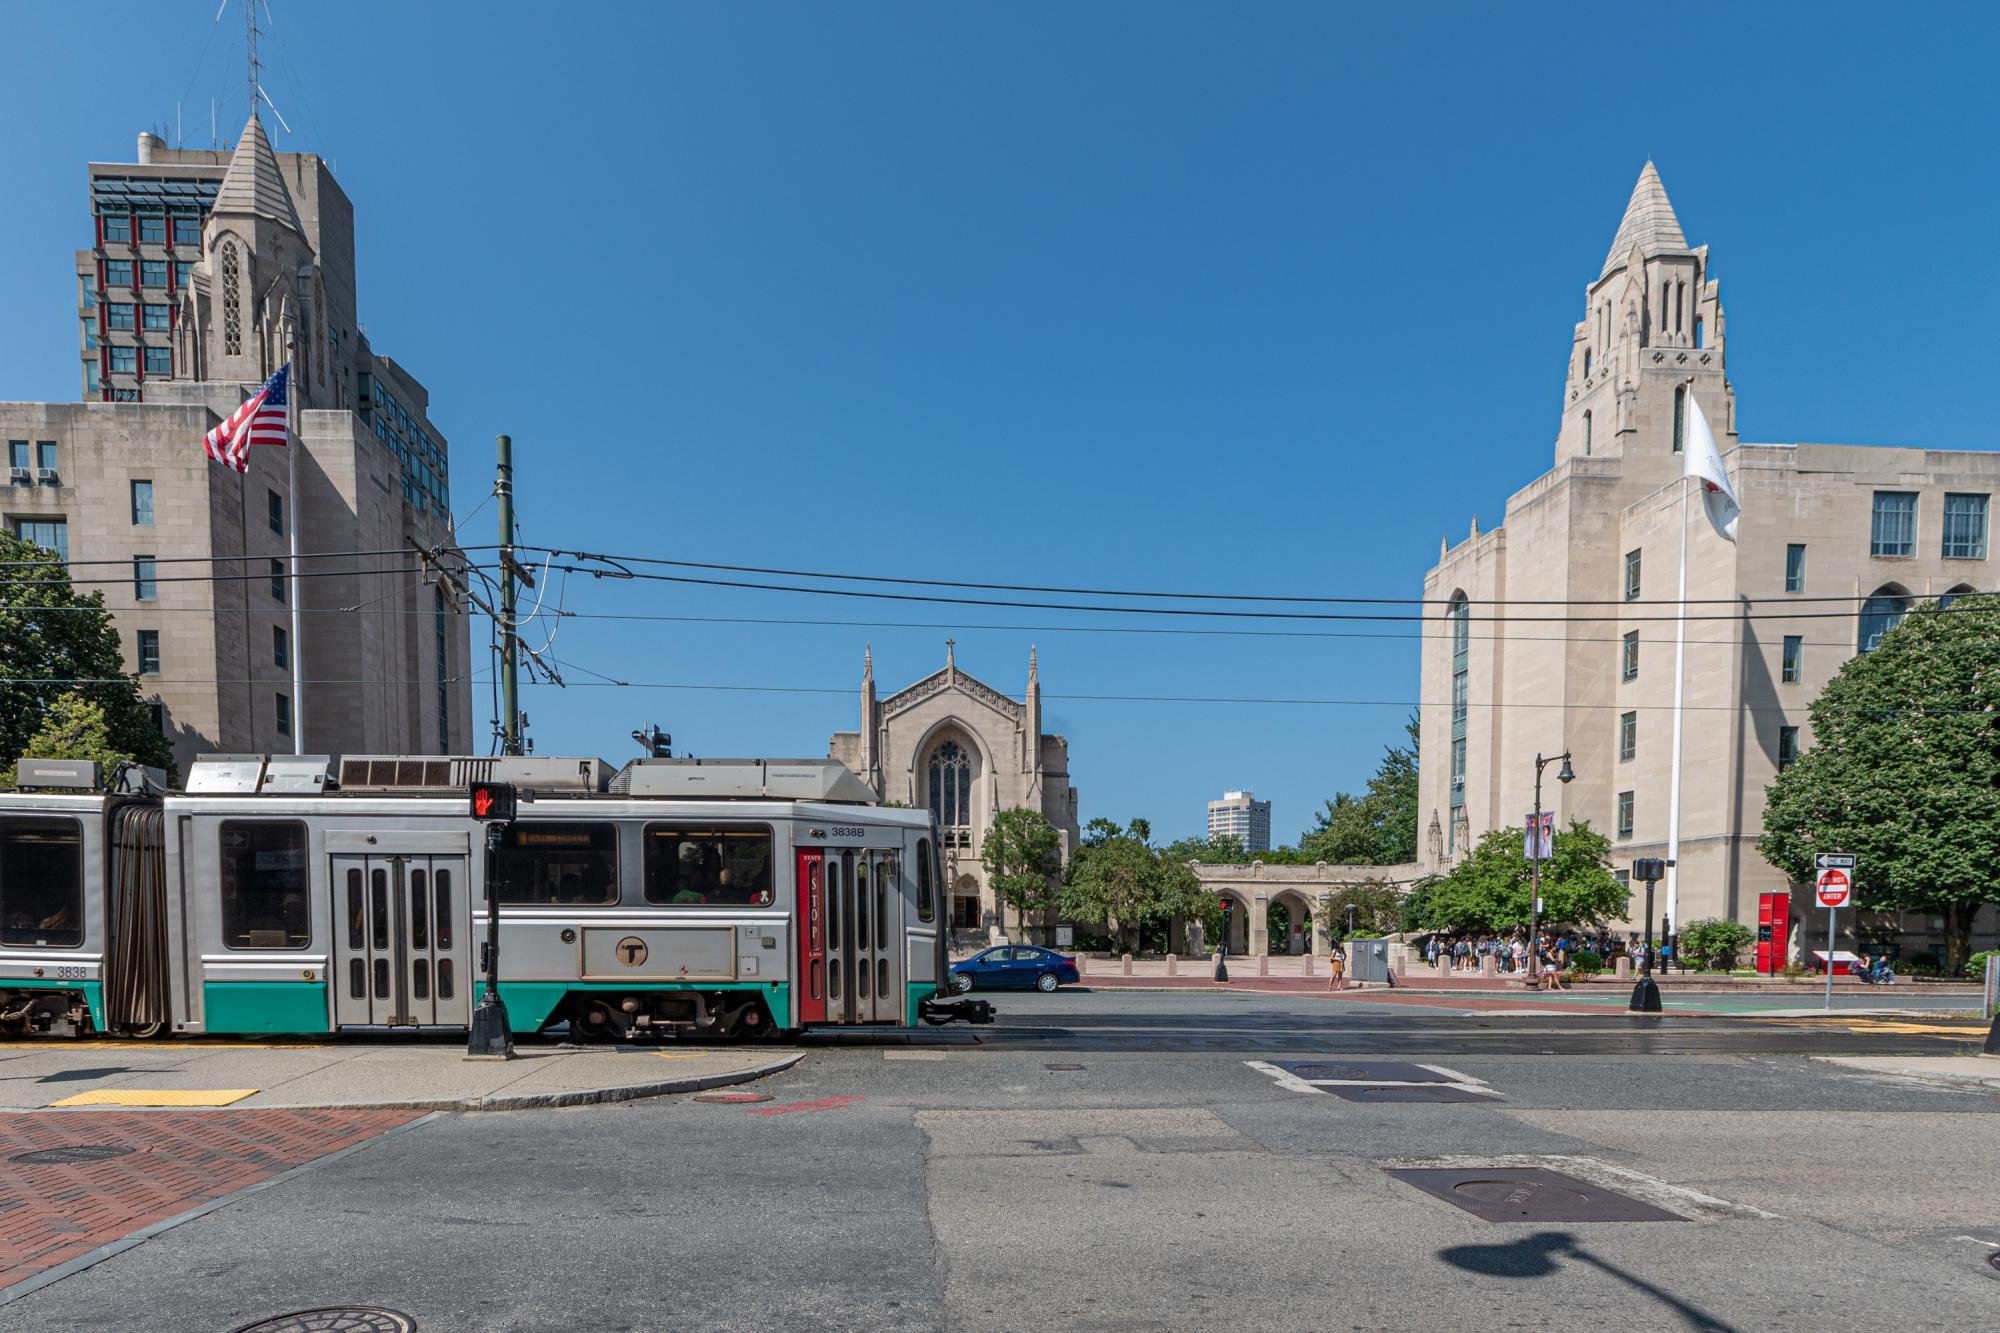 A Green Line B train passes through BU Central, with Marsh Chapel in the background